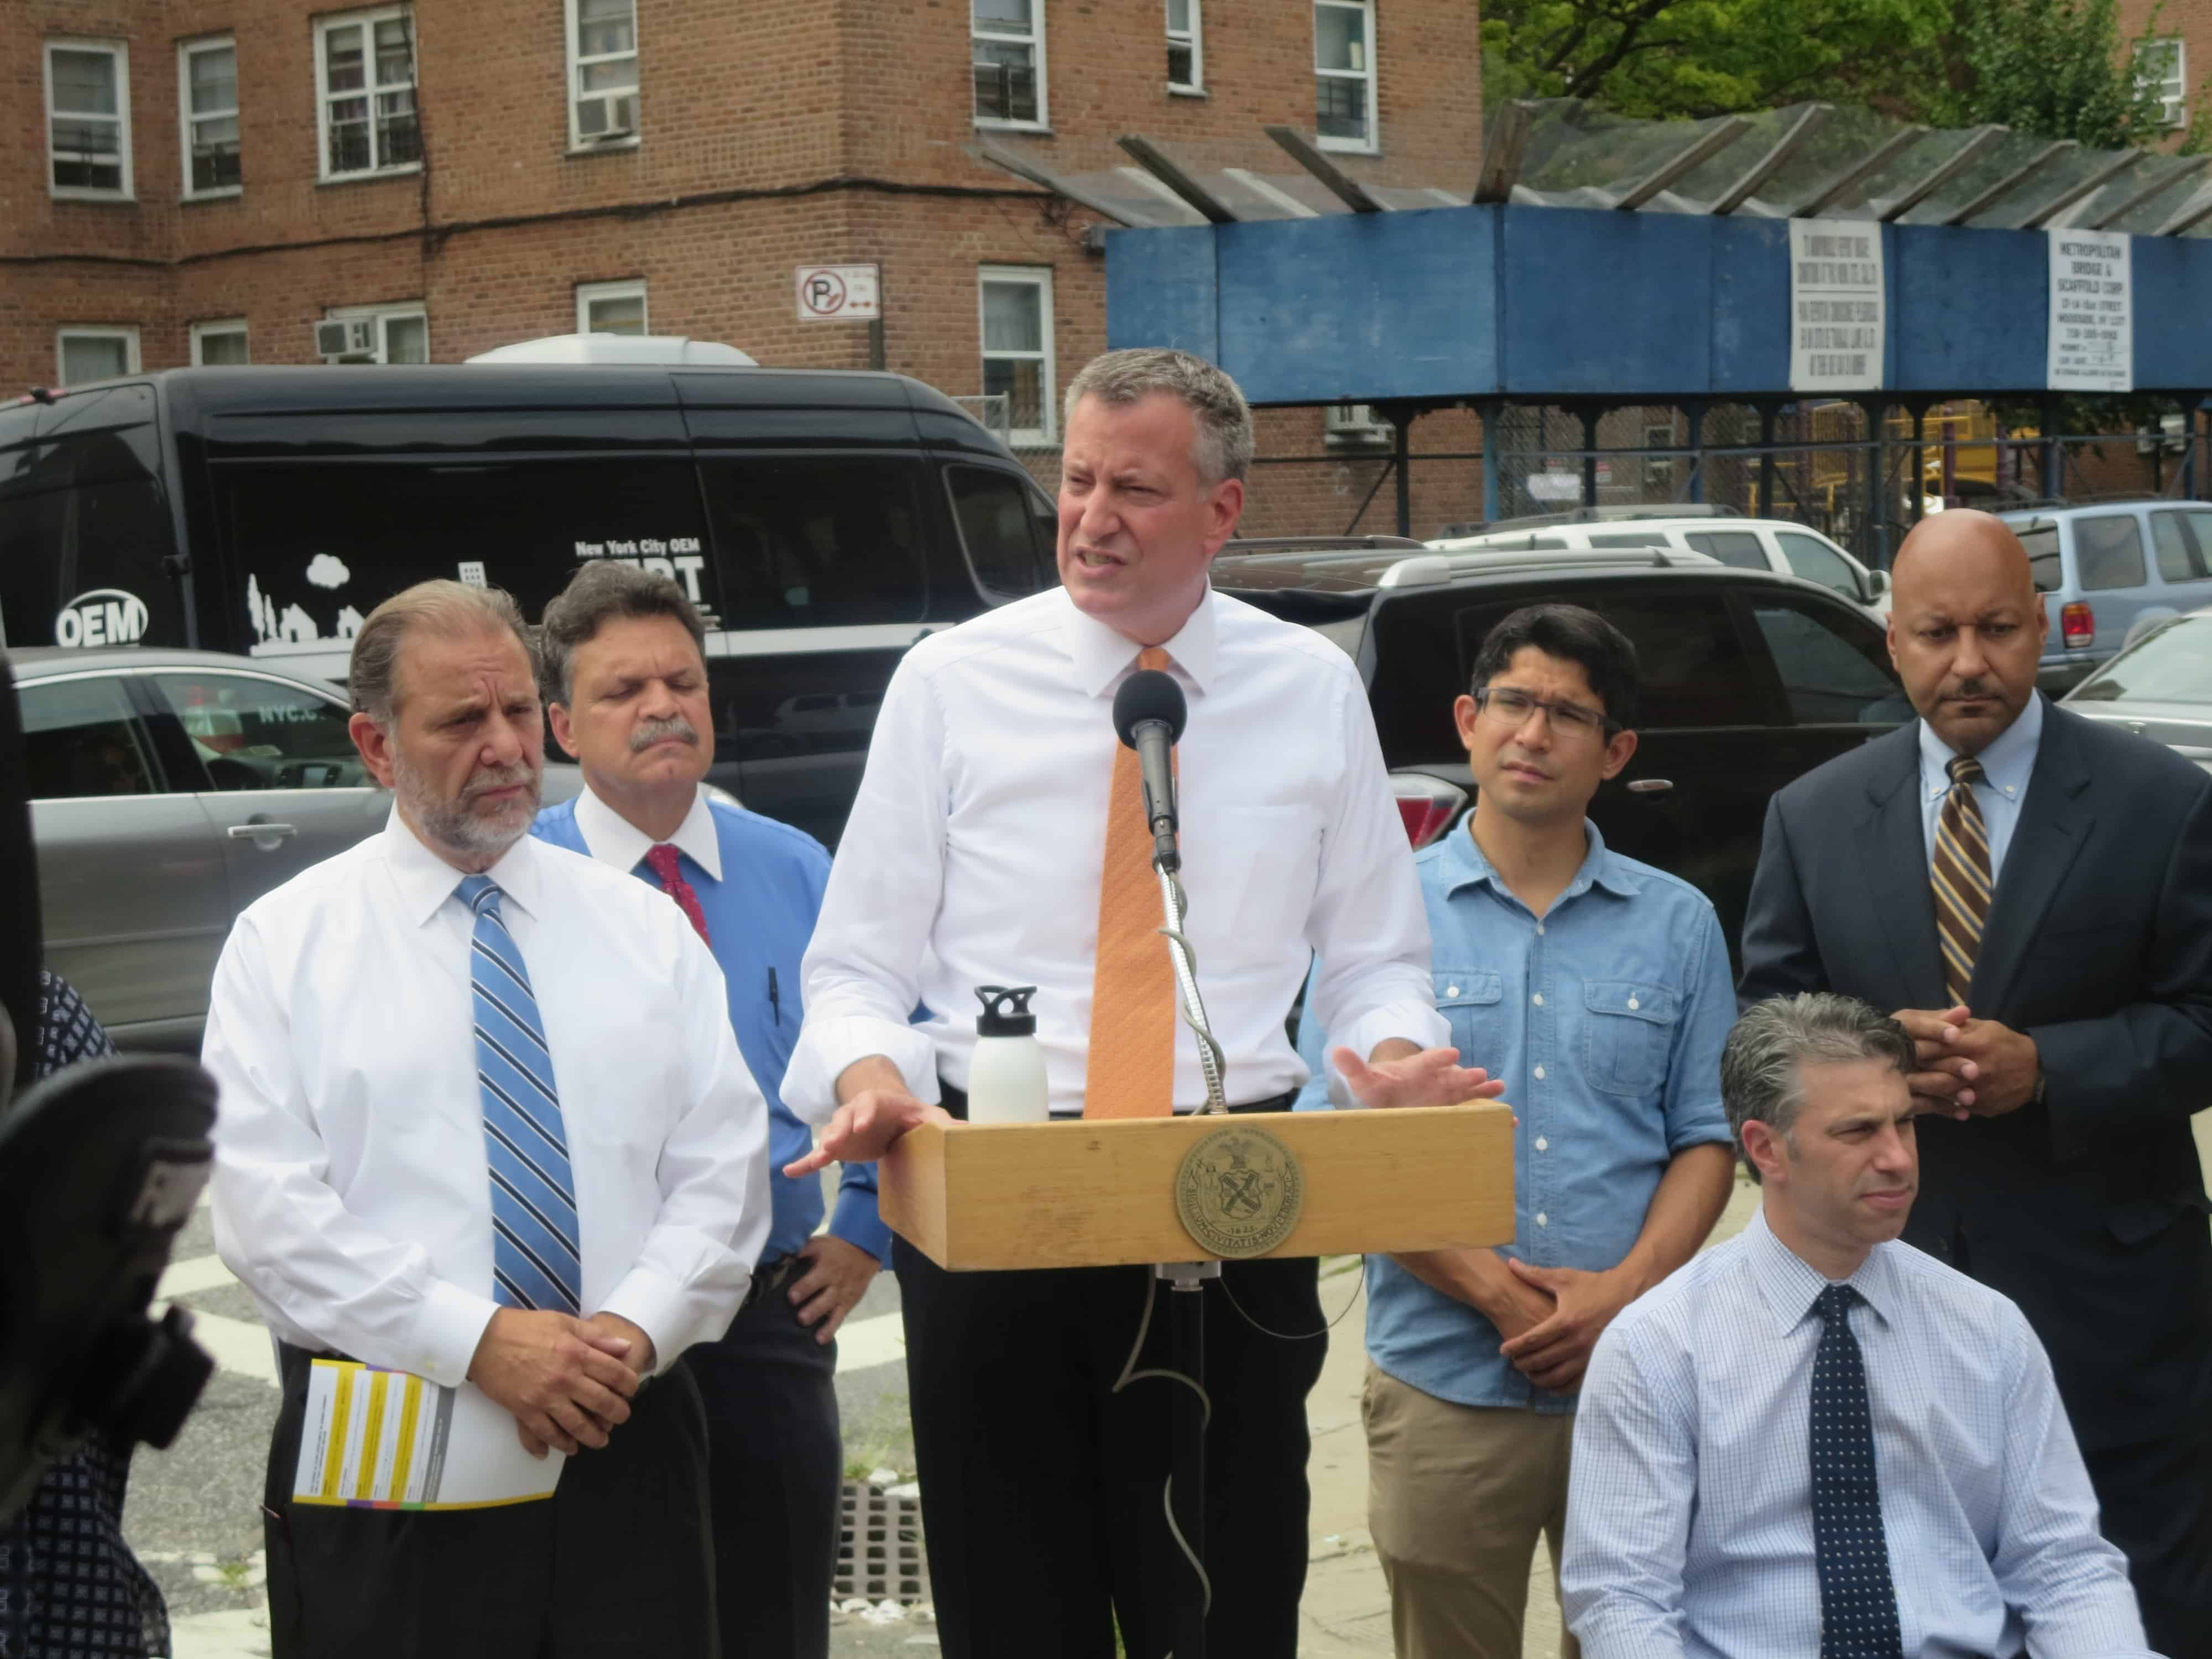 Opinion: De Blasio gets ever smaller, by George Fiala